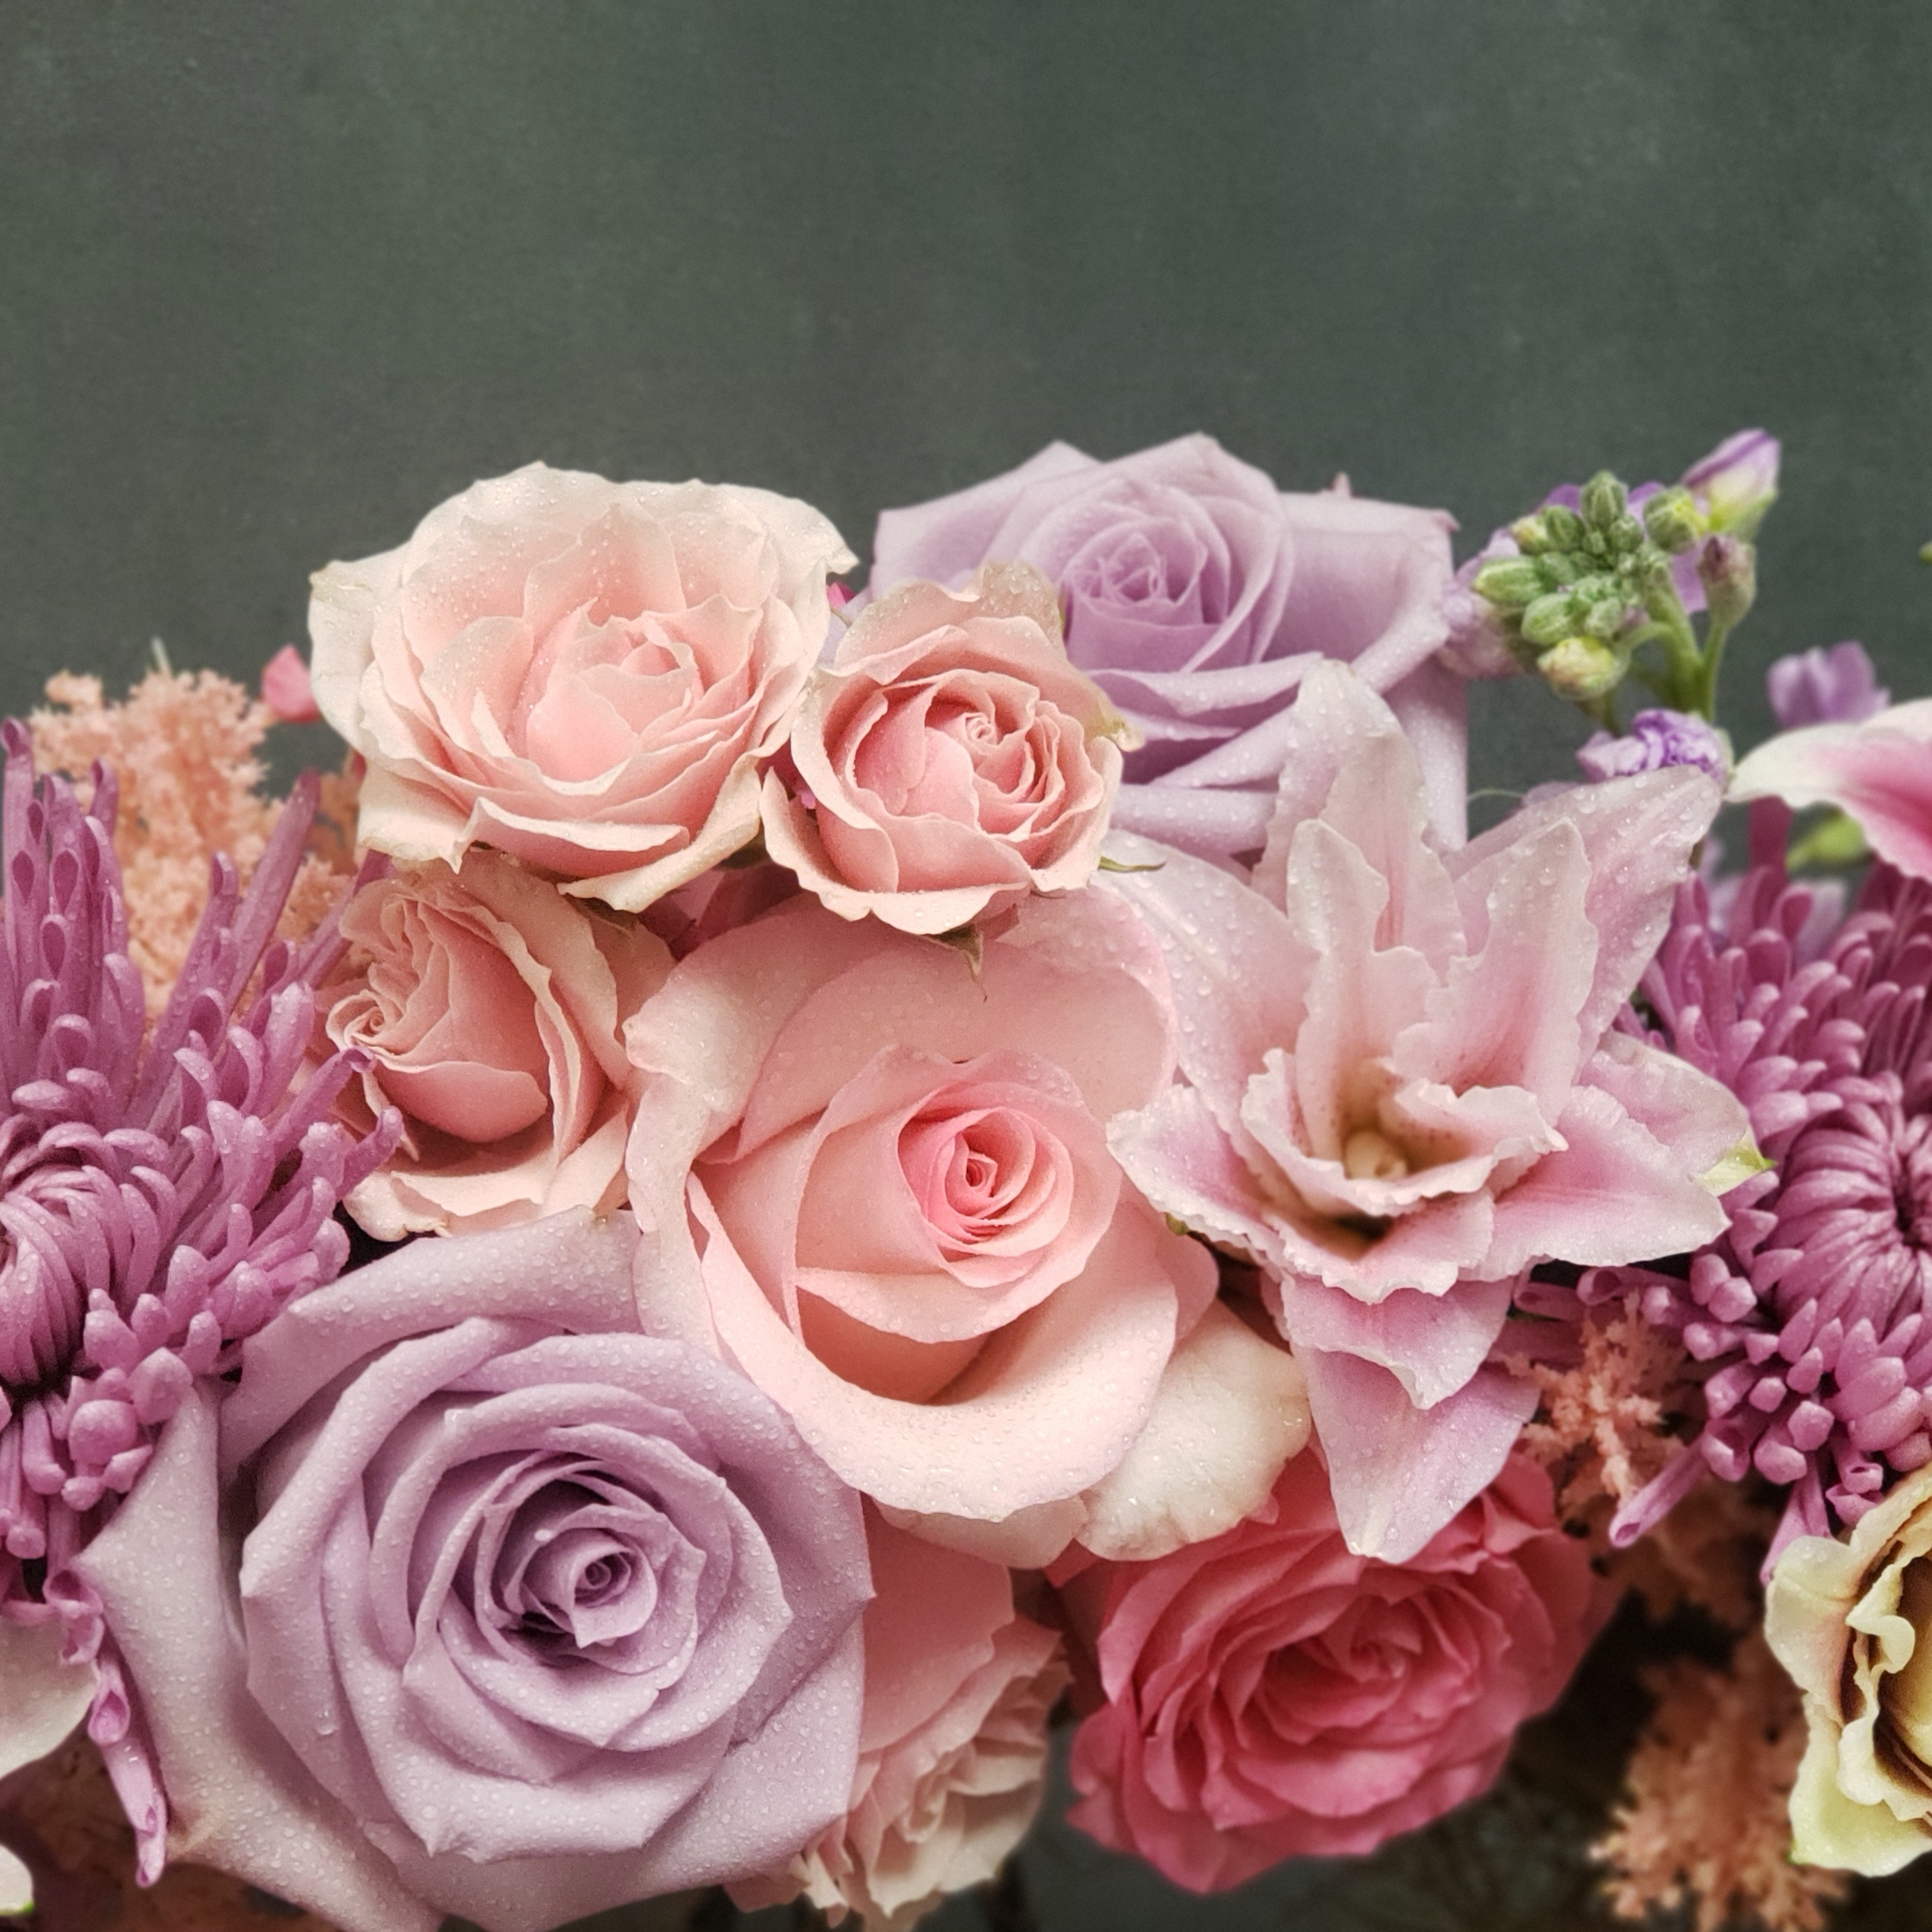 pink and lavenderblooms.jpg